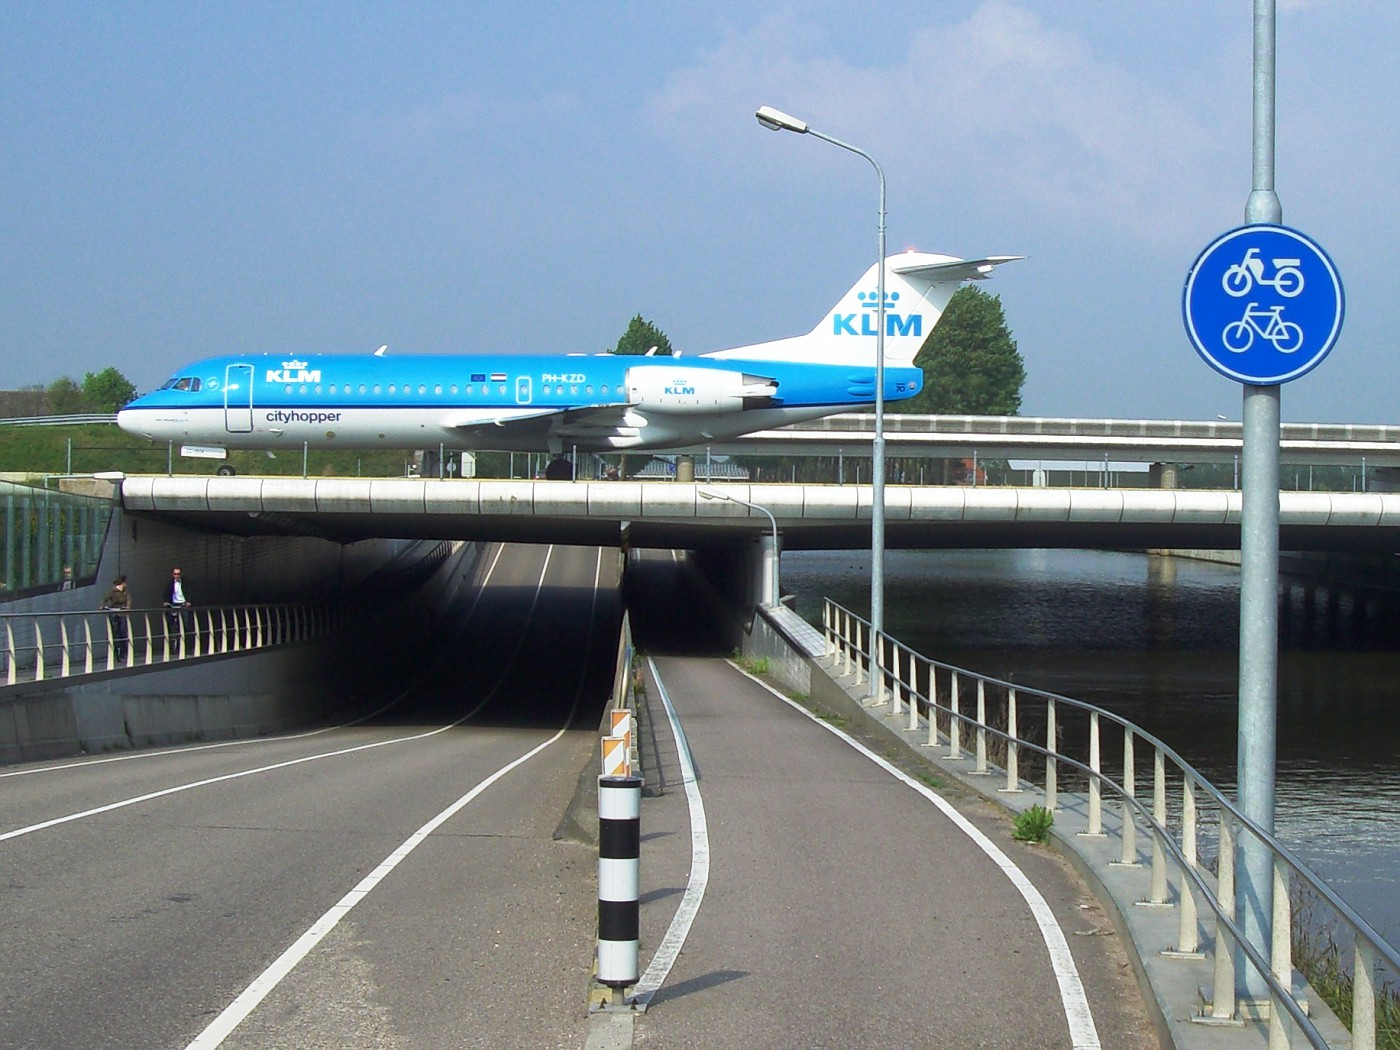 Airplane crosses cycle track